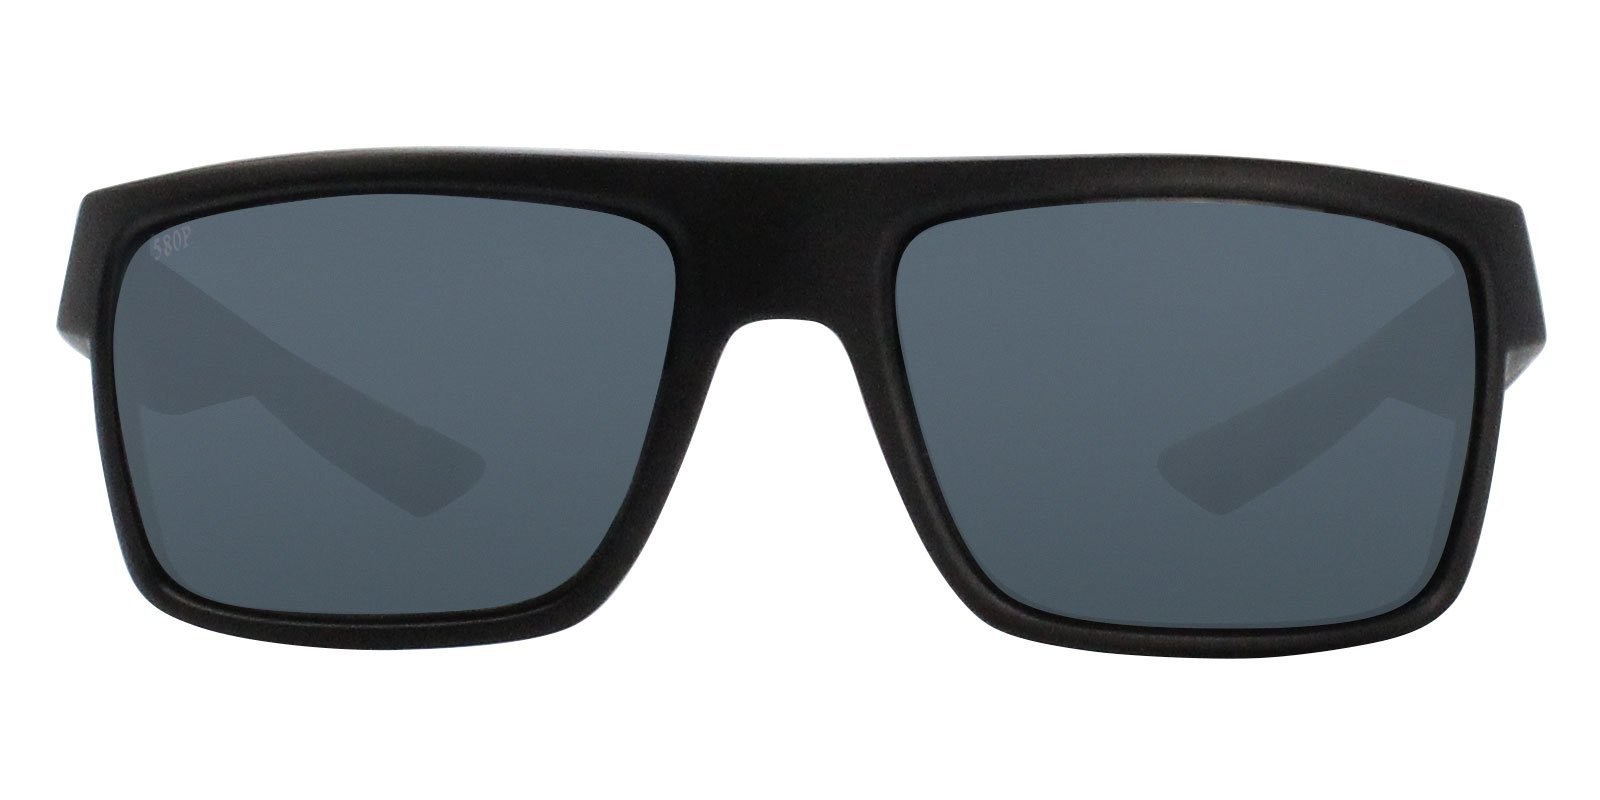 Costa Del Mar - Motu Black /Gray Polarized Rectangular Unisex Sunglasses - 57mm-Sunglasses-Designer Eyes